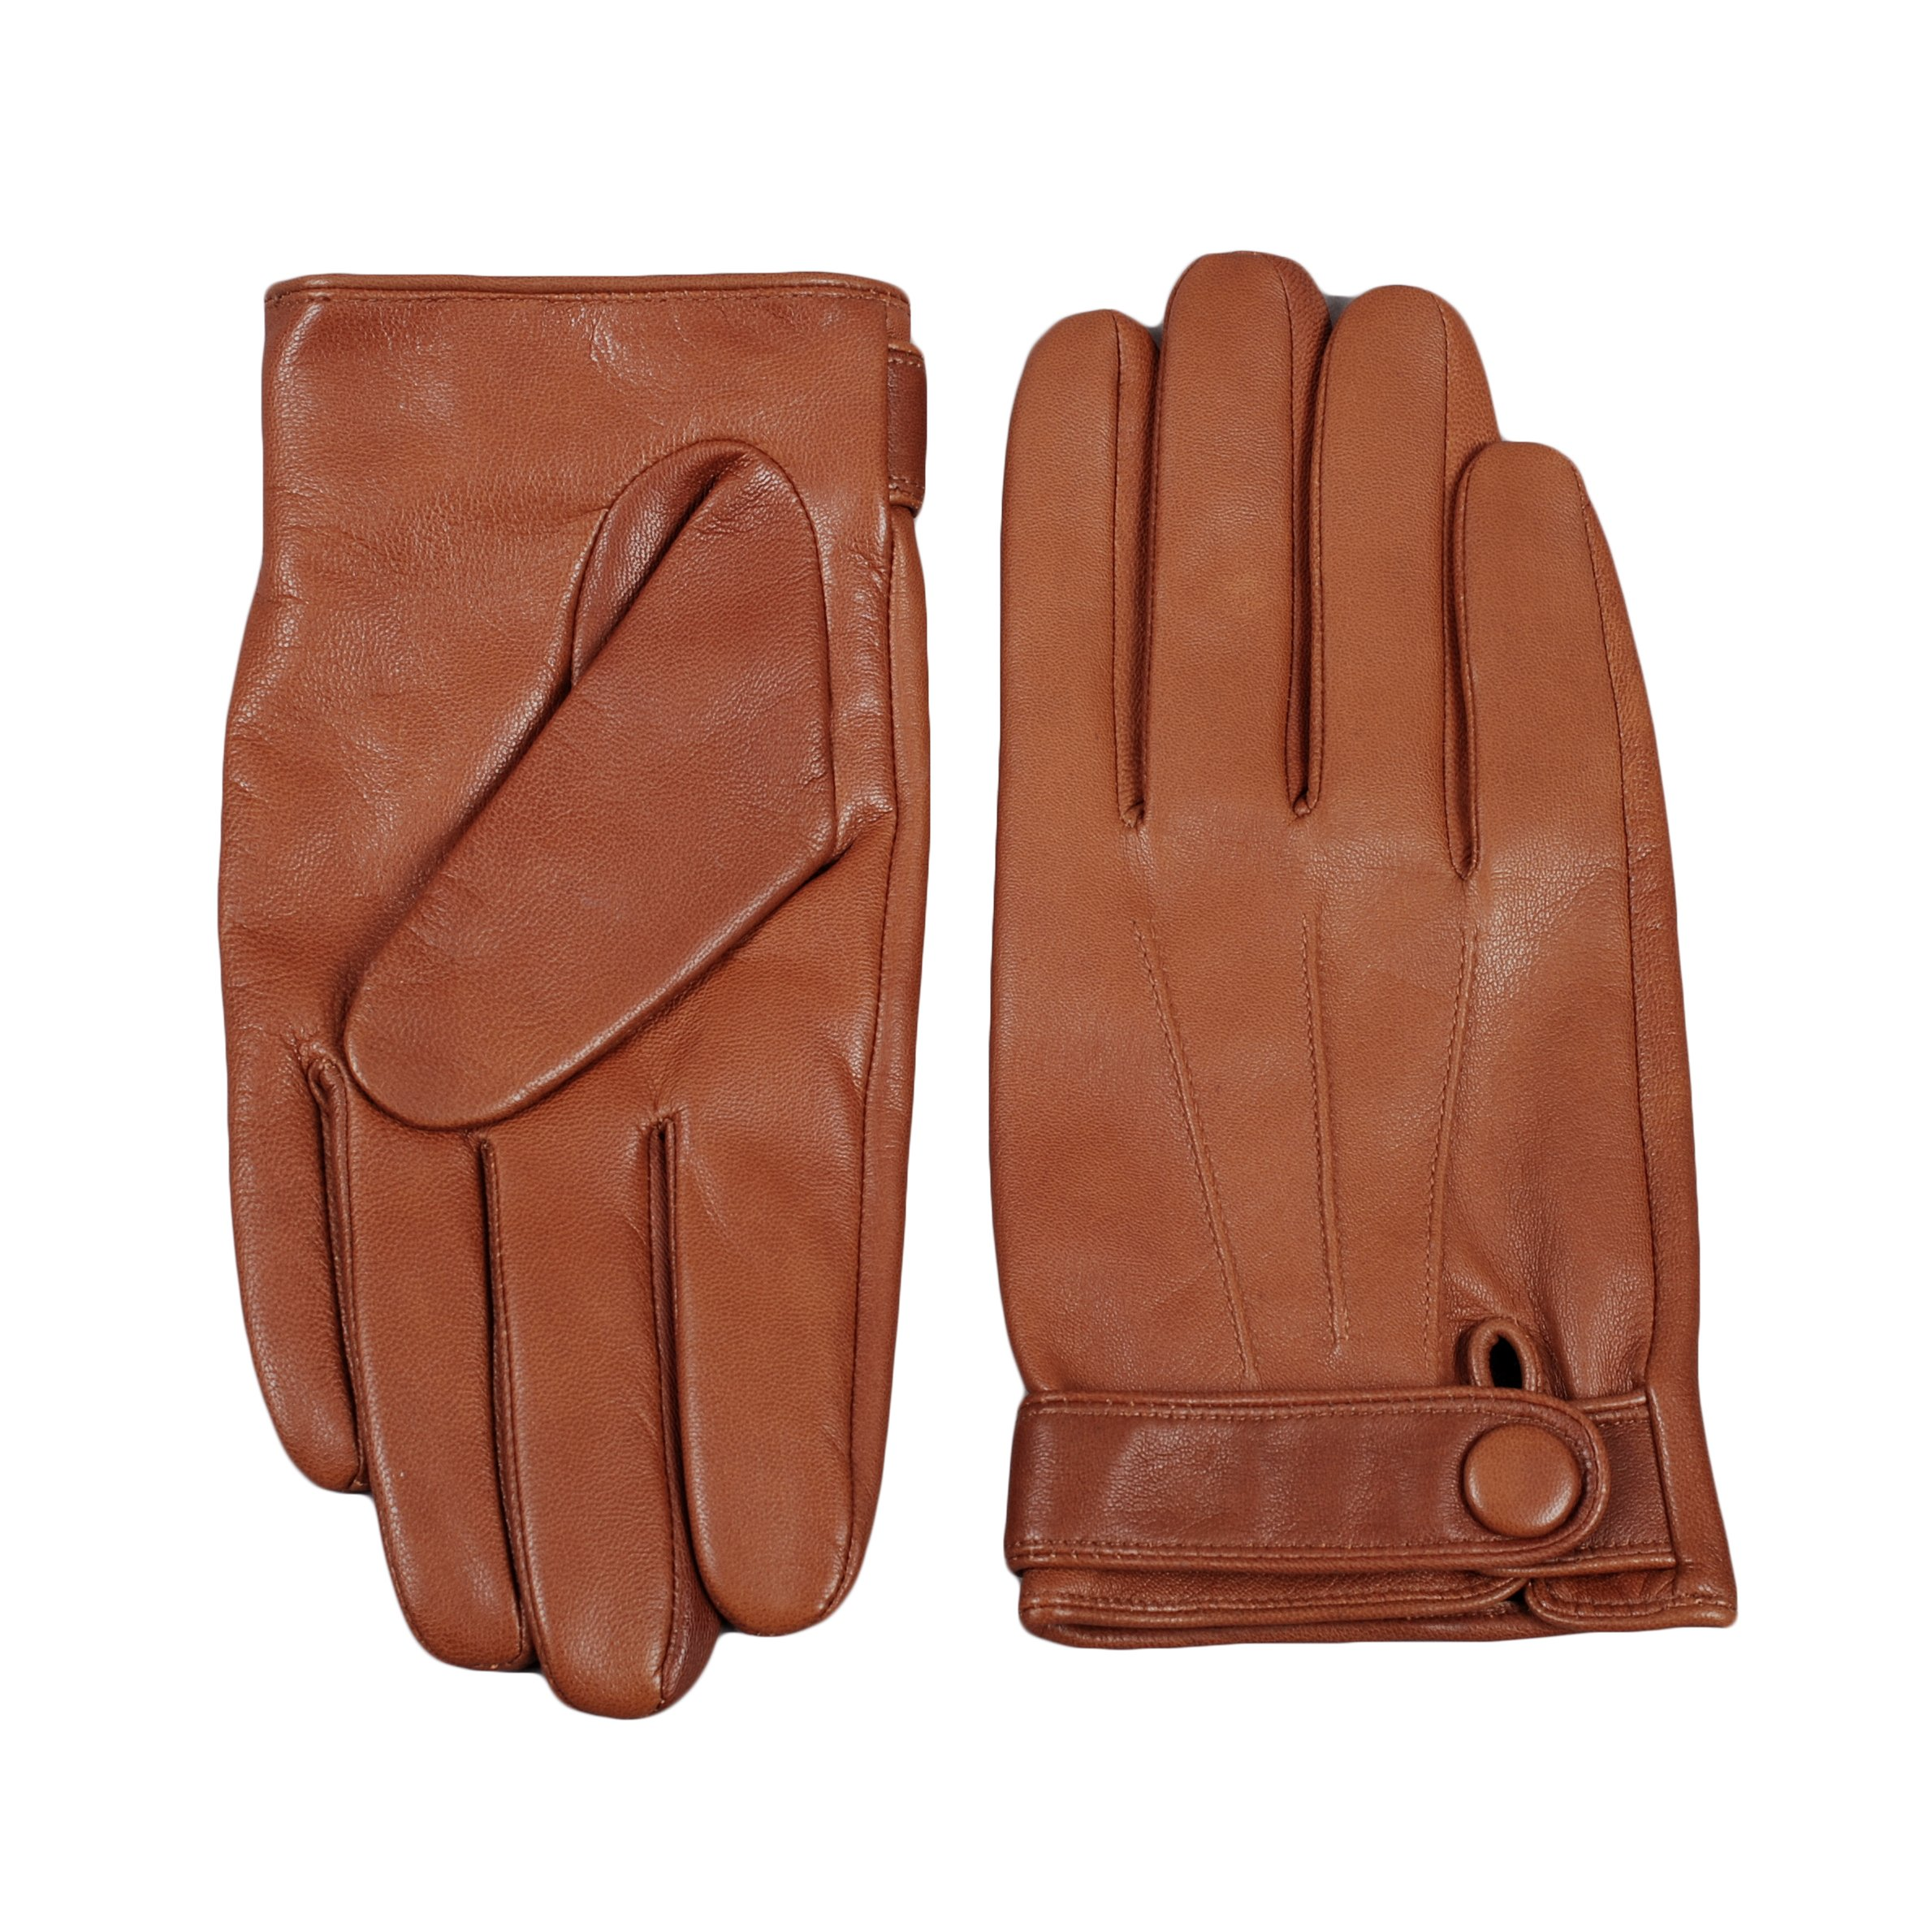 Men's Warm Gloves, Magelier Winter Sheepskin Leather Daily Dress Driving Gloves, Large, Brown by Magelier (Image #2)